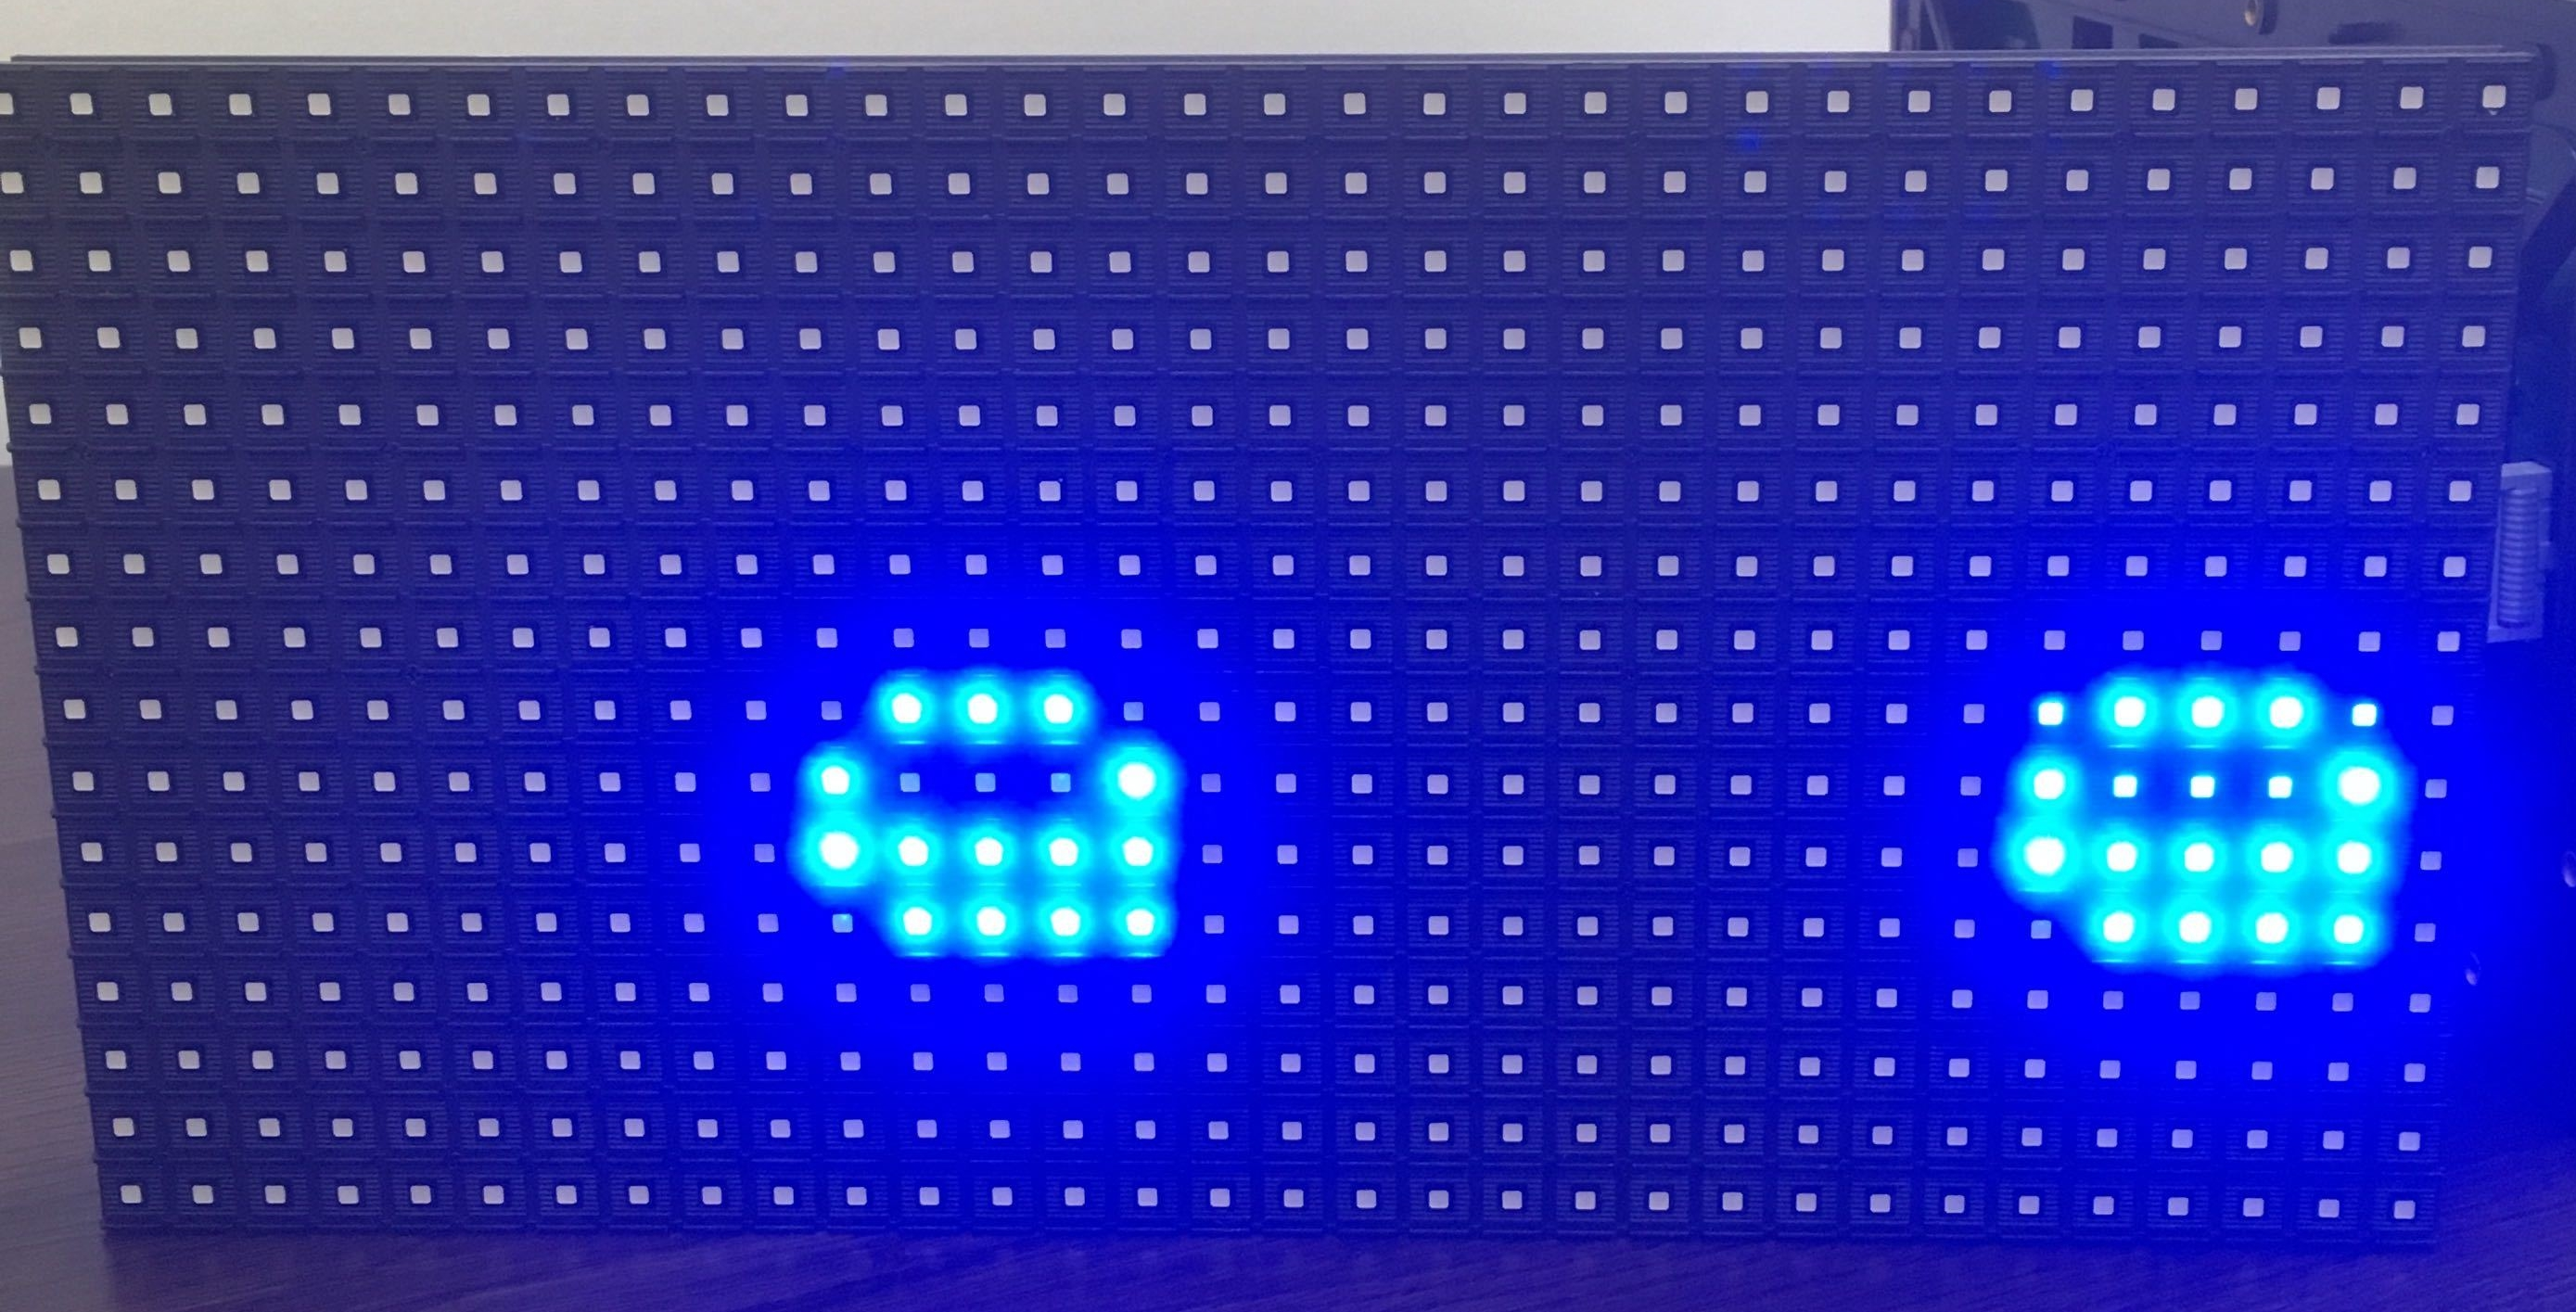 text split and shifted · Issue #46 · adafruit/RGB-matrix-Panel · GitHub